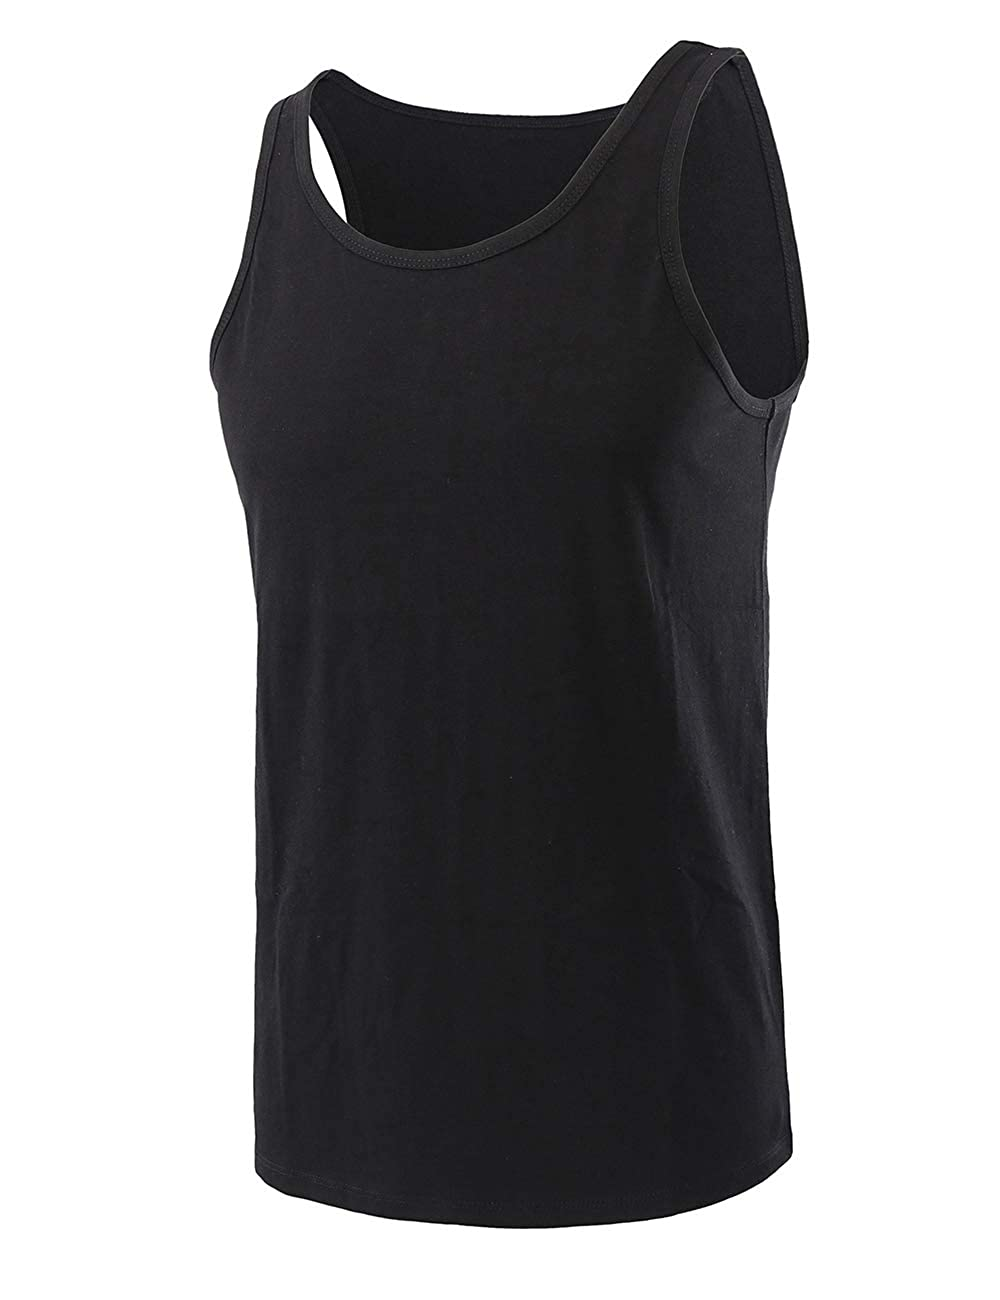 Mens Classic Breathe Quick Dry Cotton Sports Muscle Tank Tops Solid Sleeveless Outdoor Jersey Shirt Tops